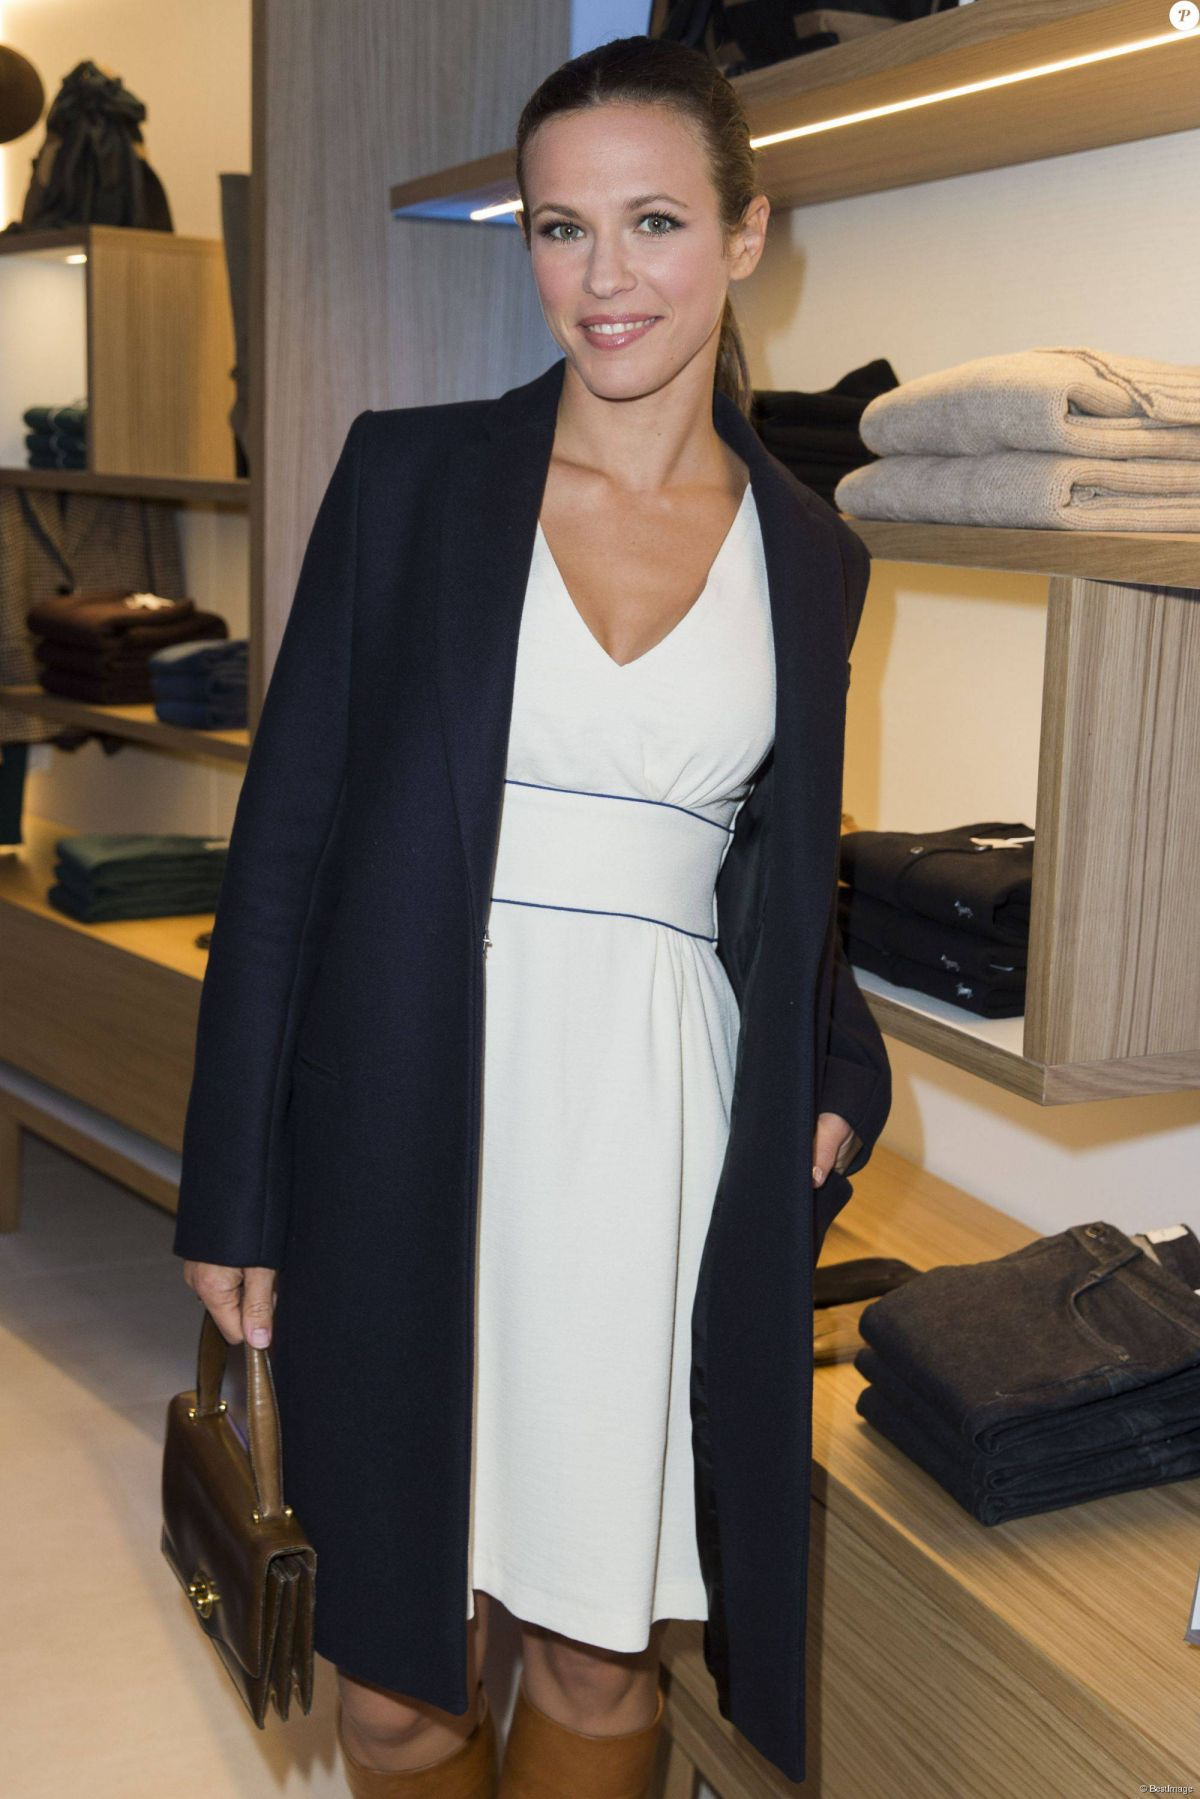 LORIE PESTER at Harmont & Blaine Store Opening in Paris 10/13/2015